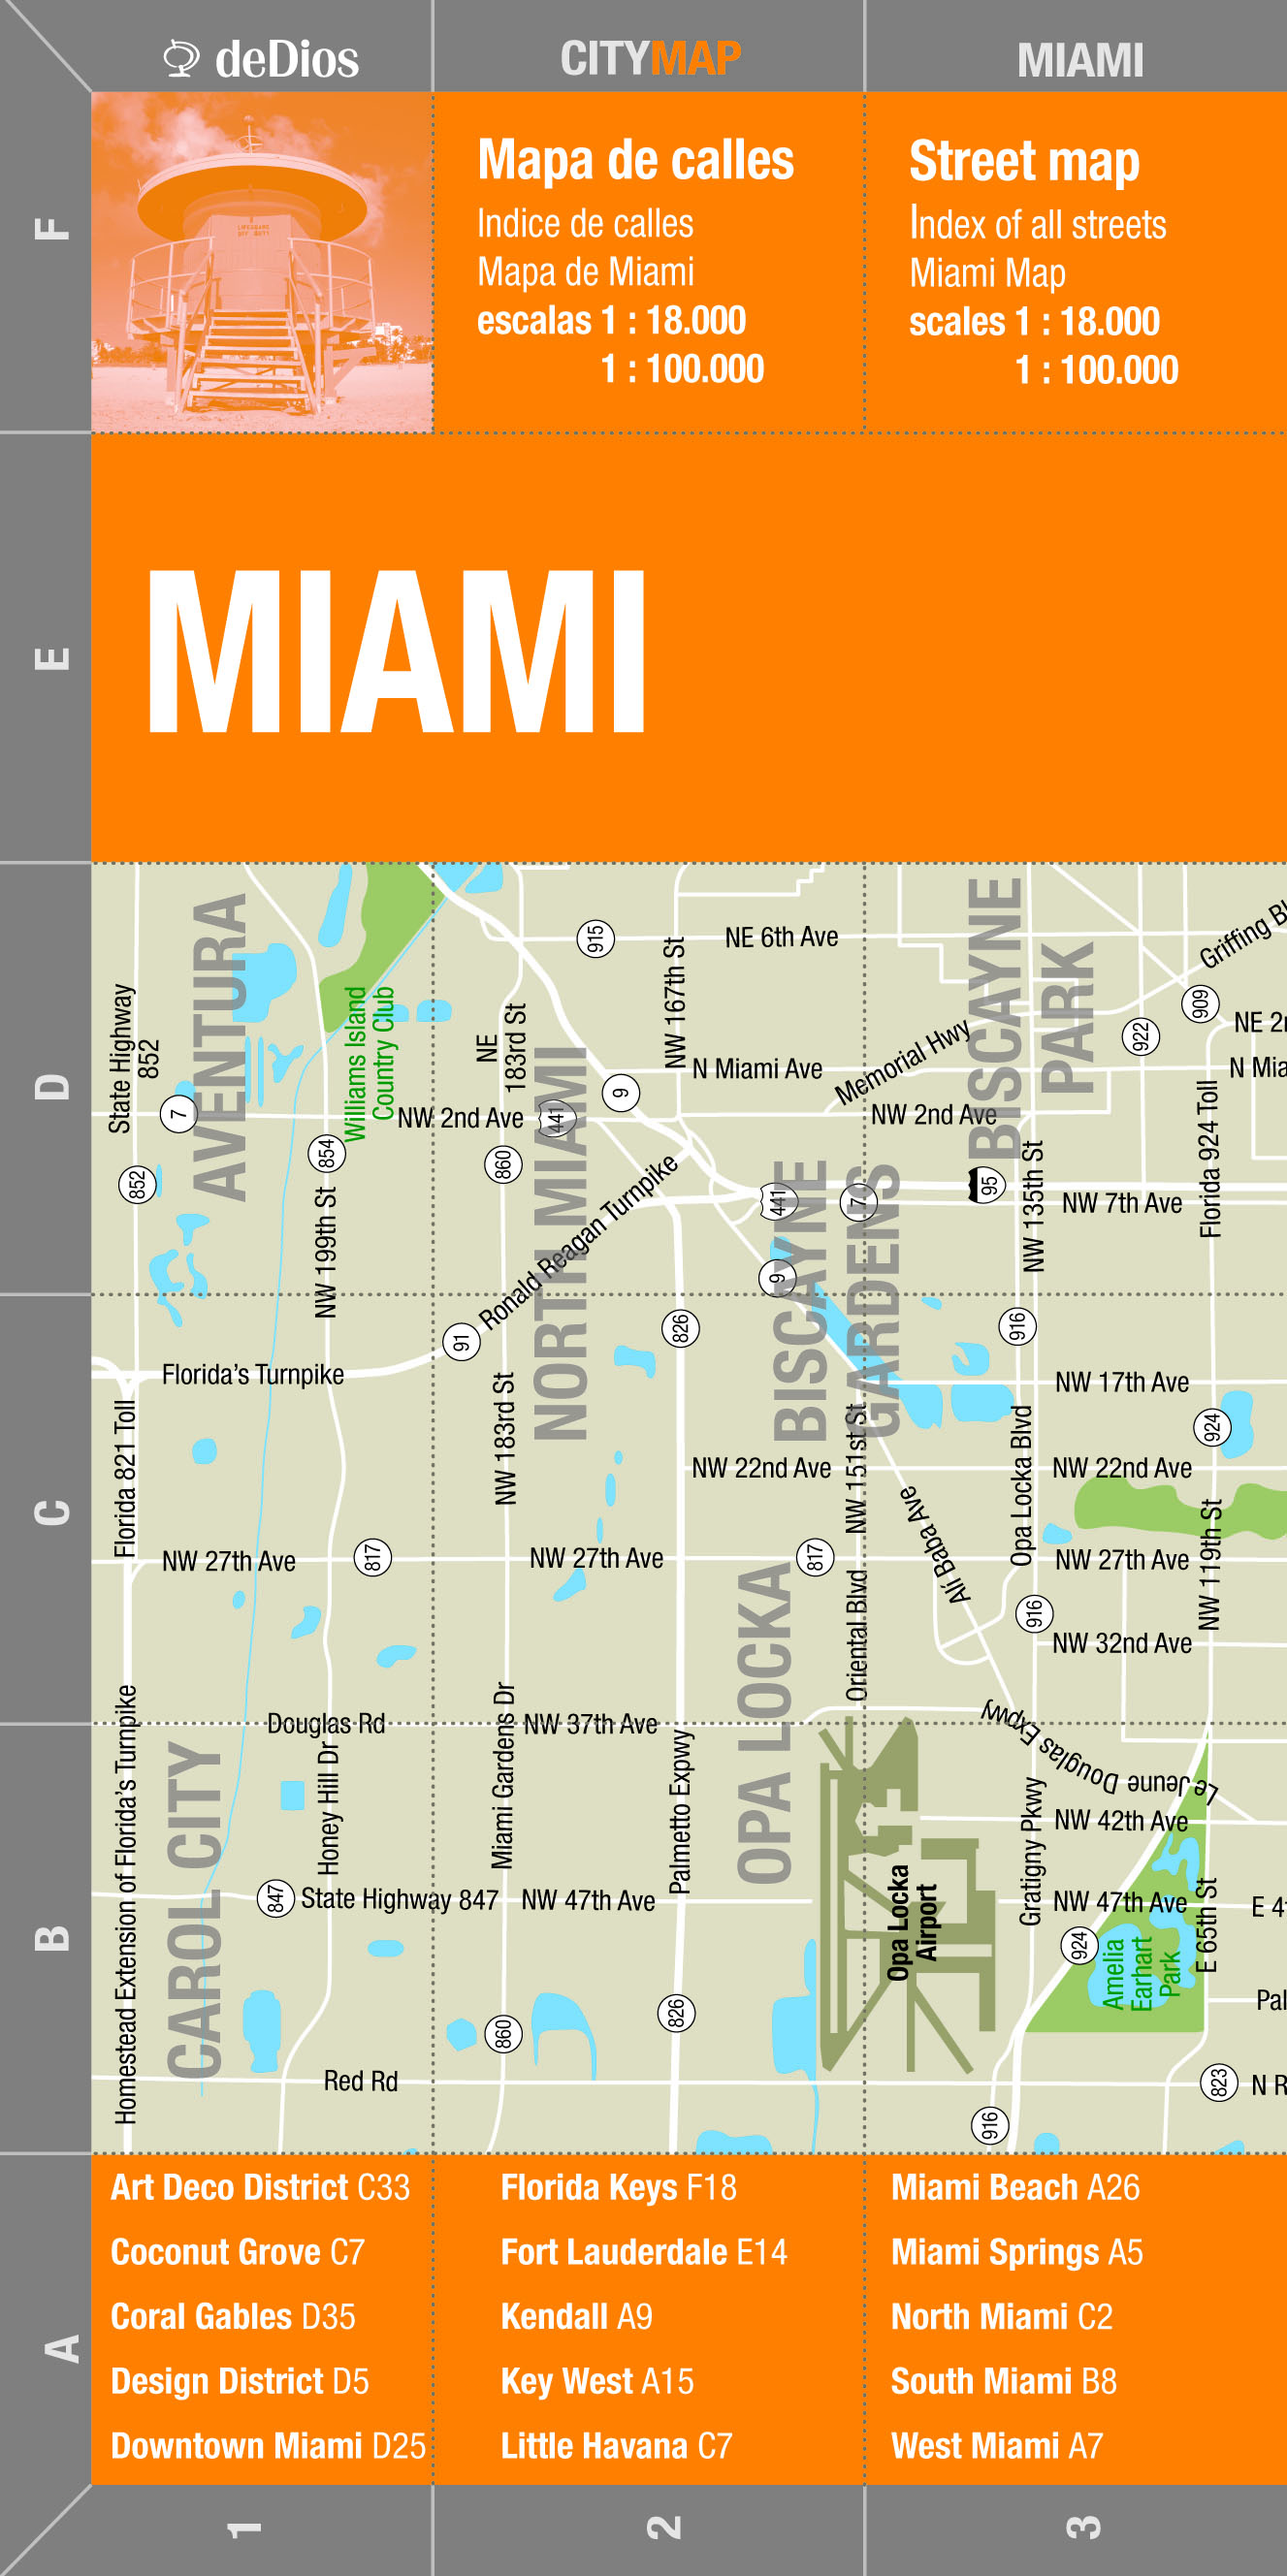 MIAMI (CITY MAP)